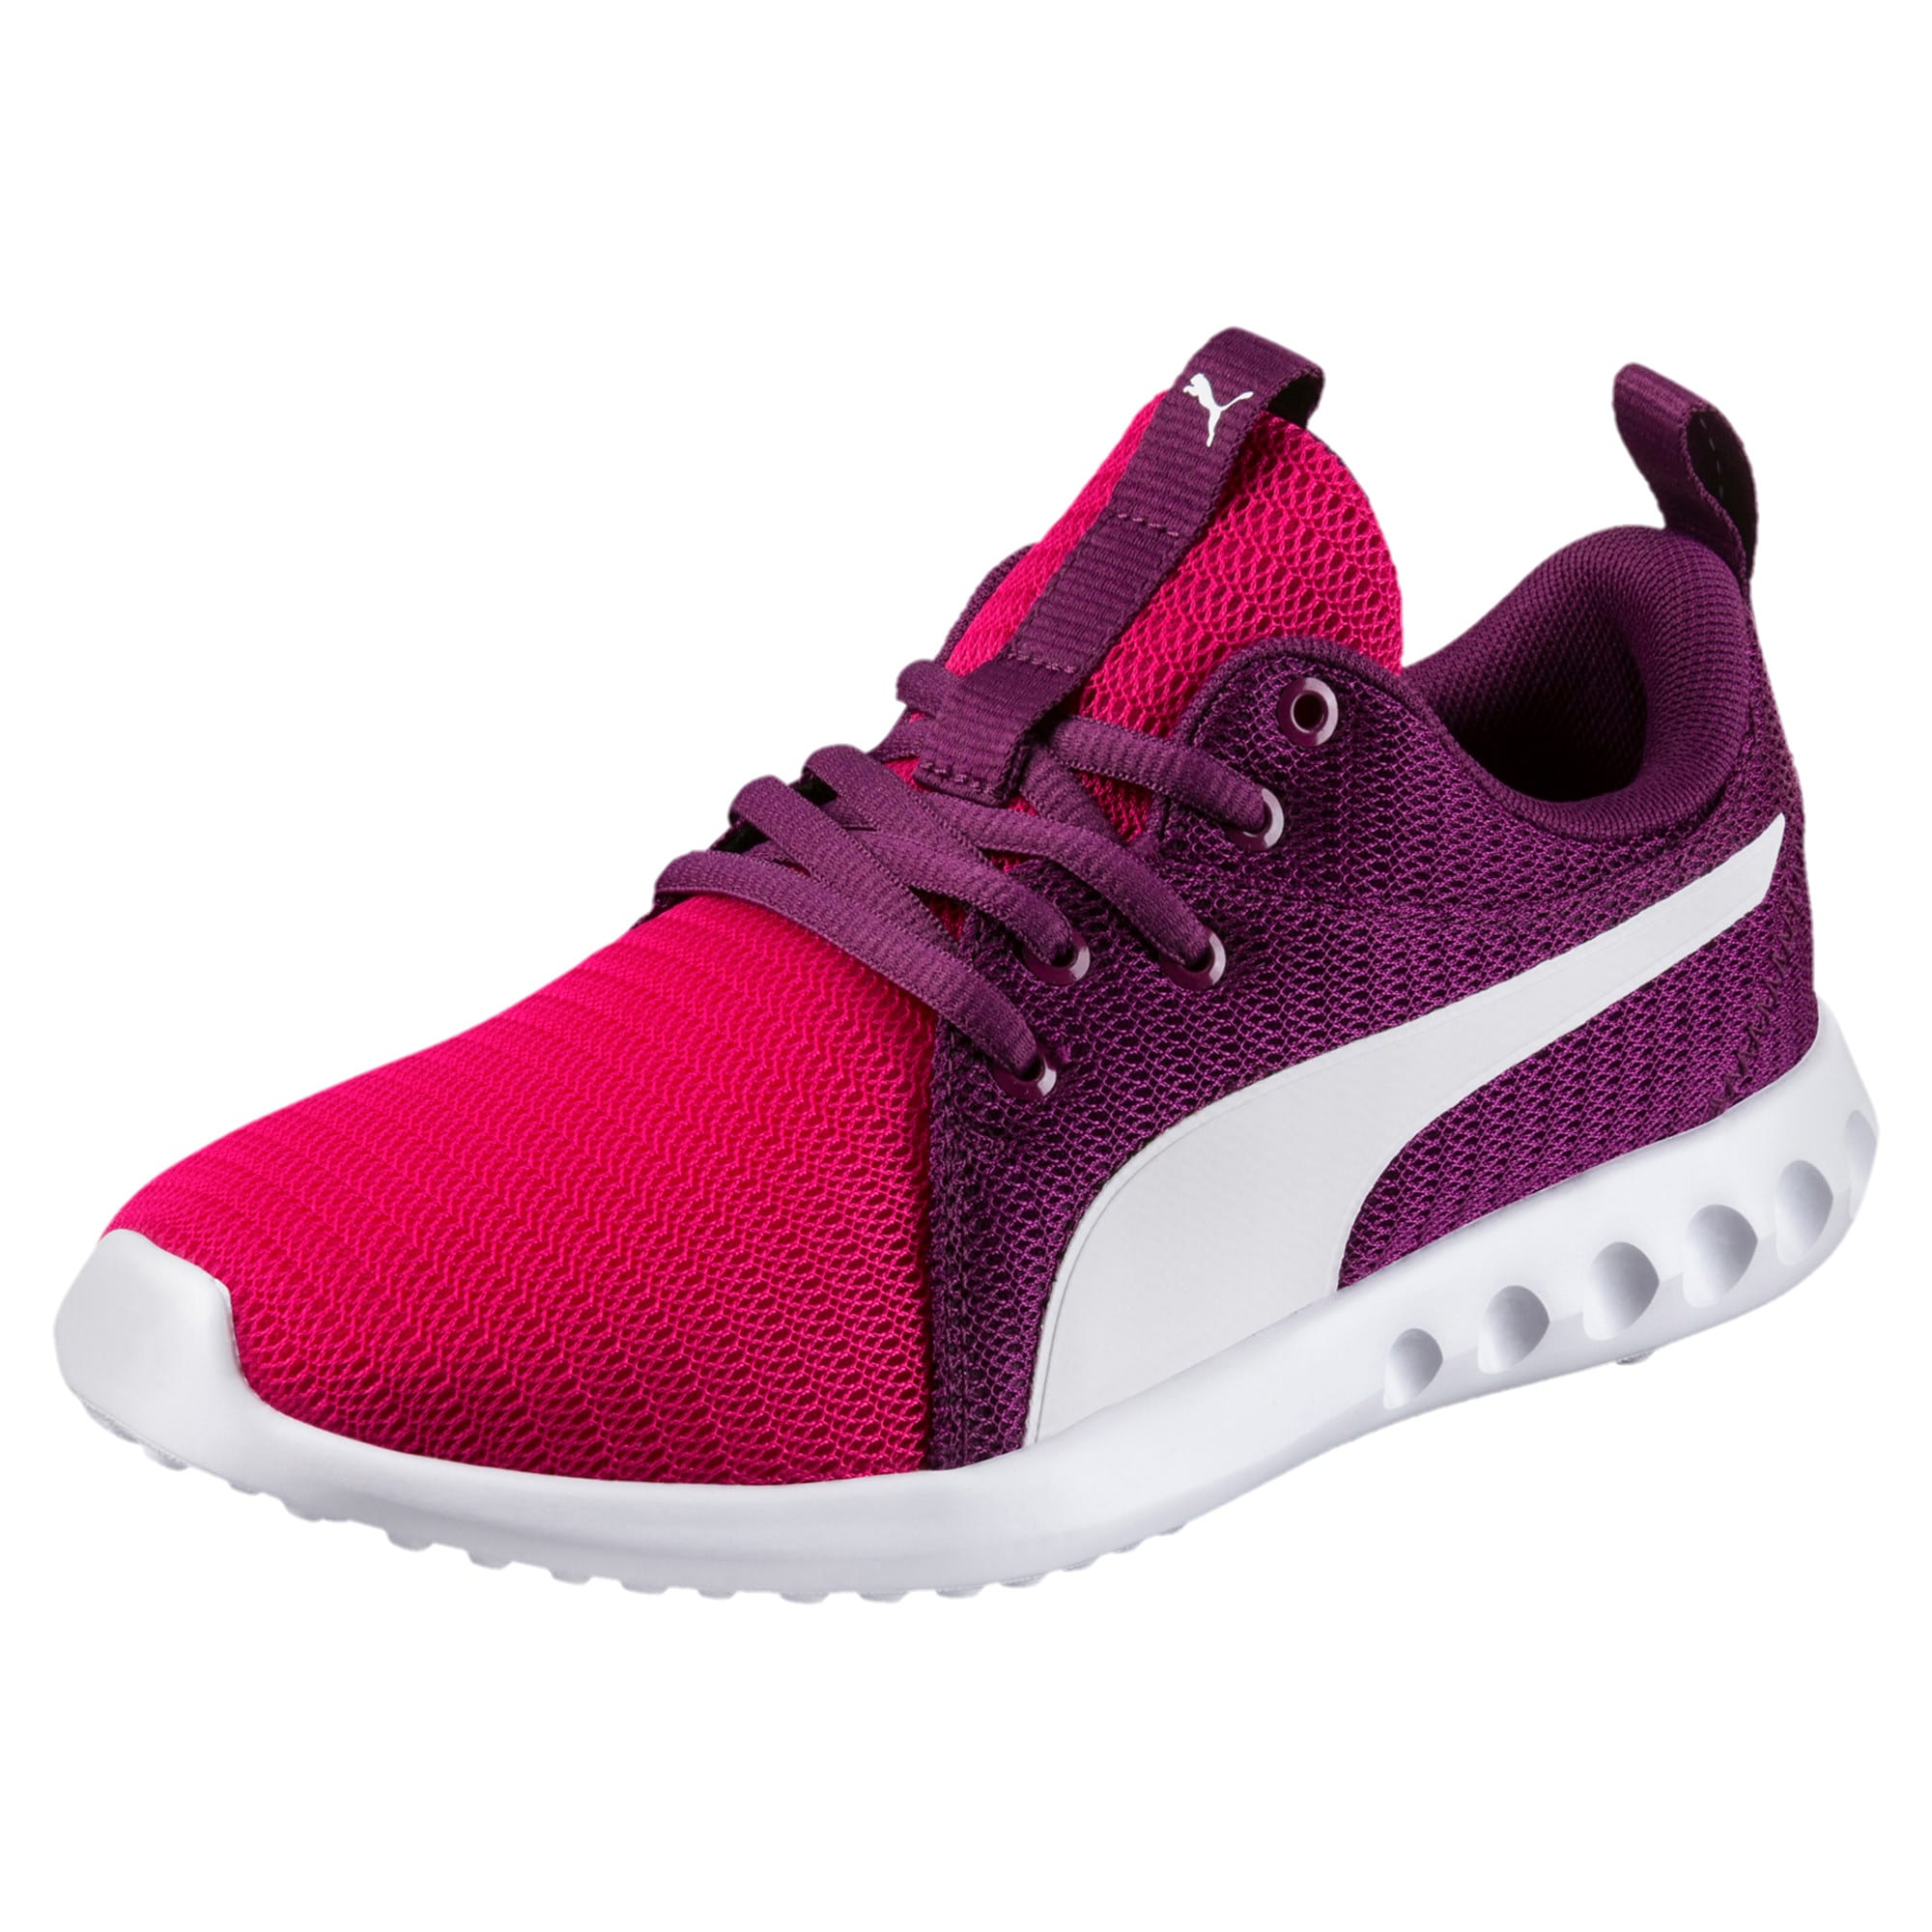 Thumbnail 1 of Carson 2 Youth Trainers, Love Potion-Puma White, medium-IND